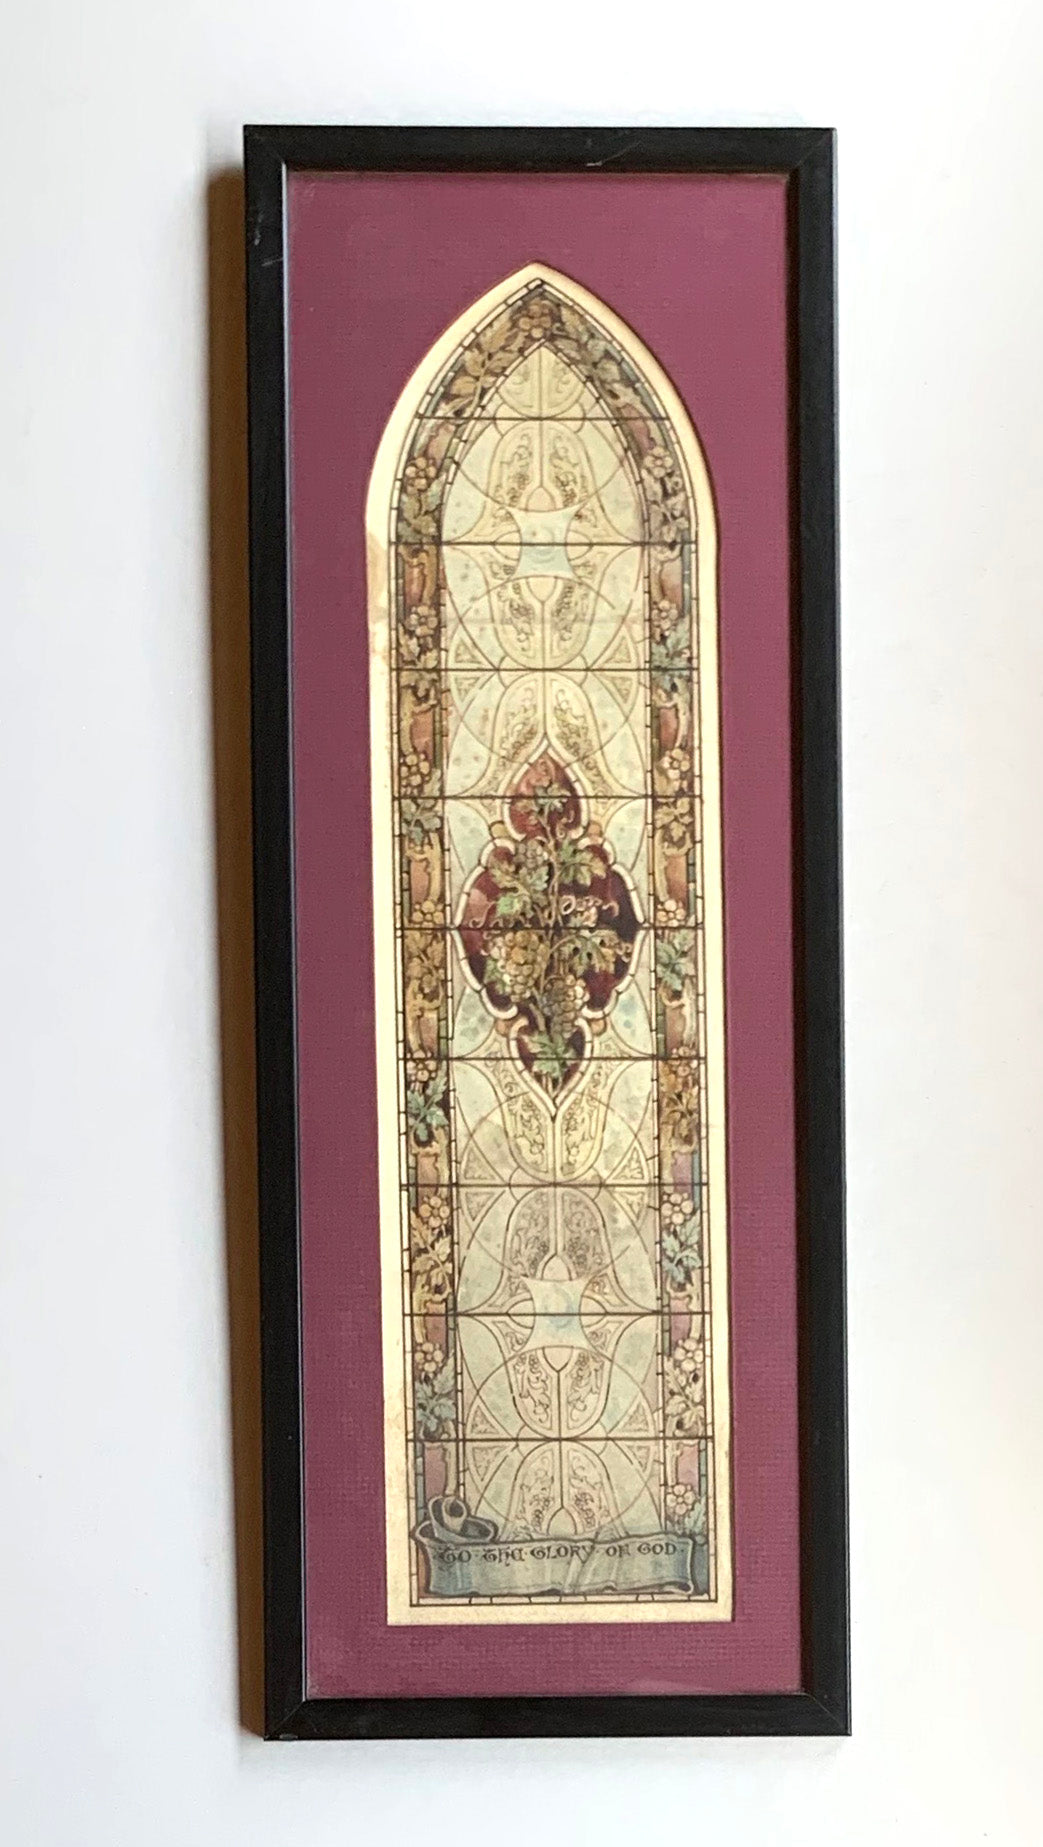 Framed Stained Glass Window Print